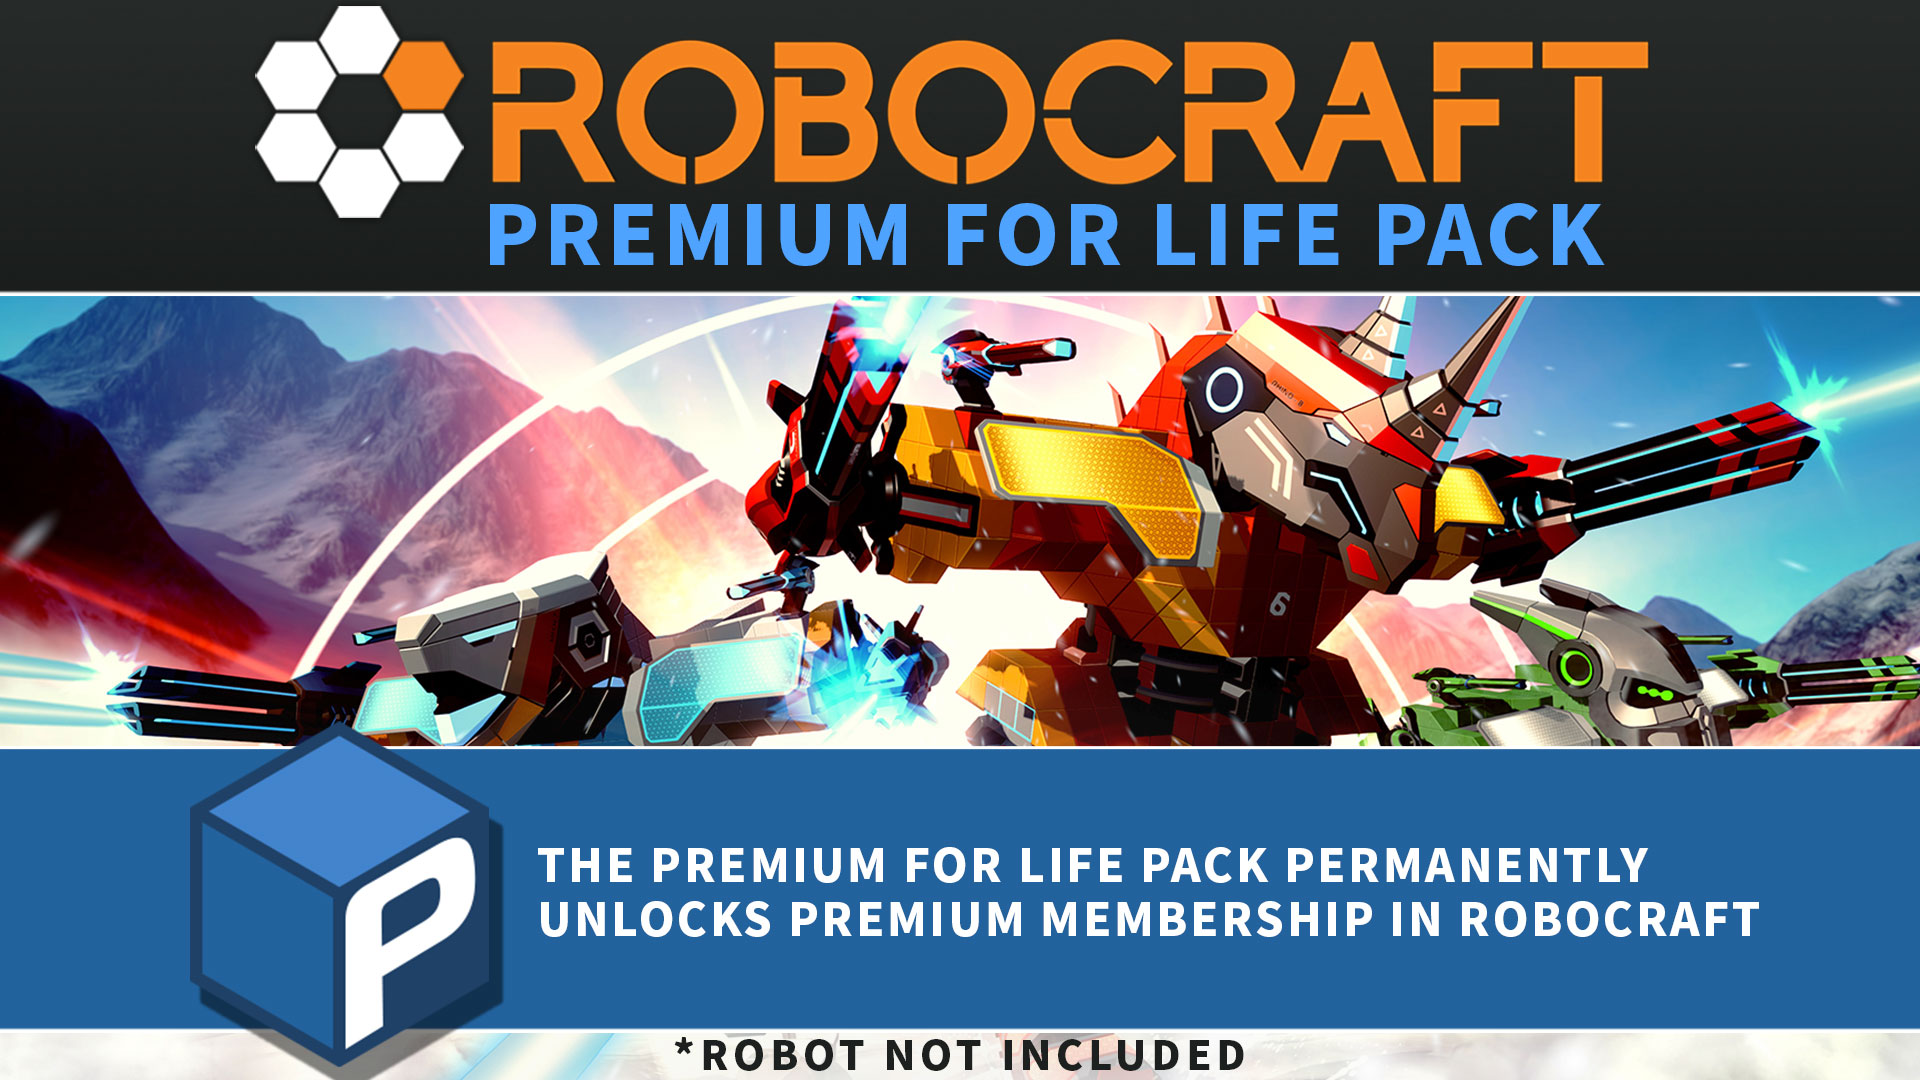 Robocraft - Lifetime Premium / Gameru.net